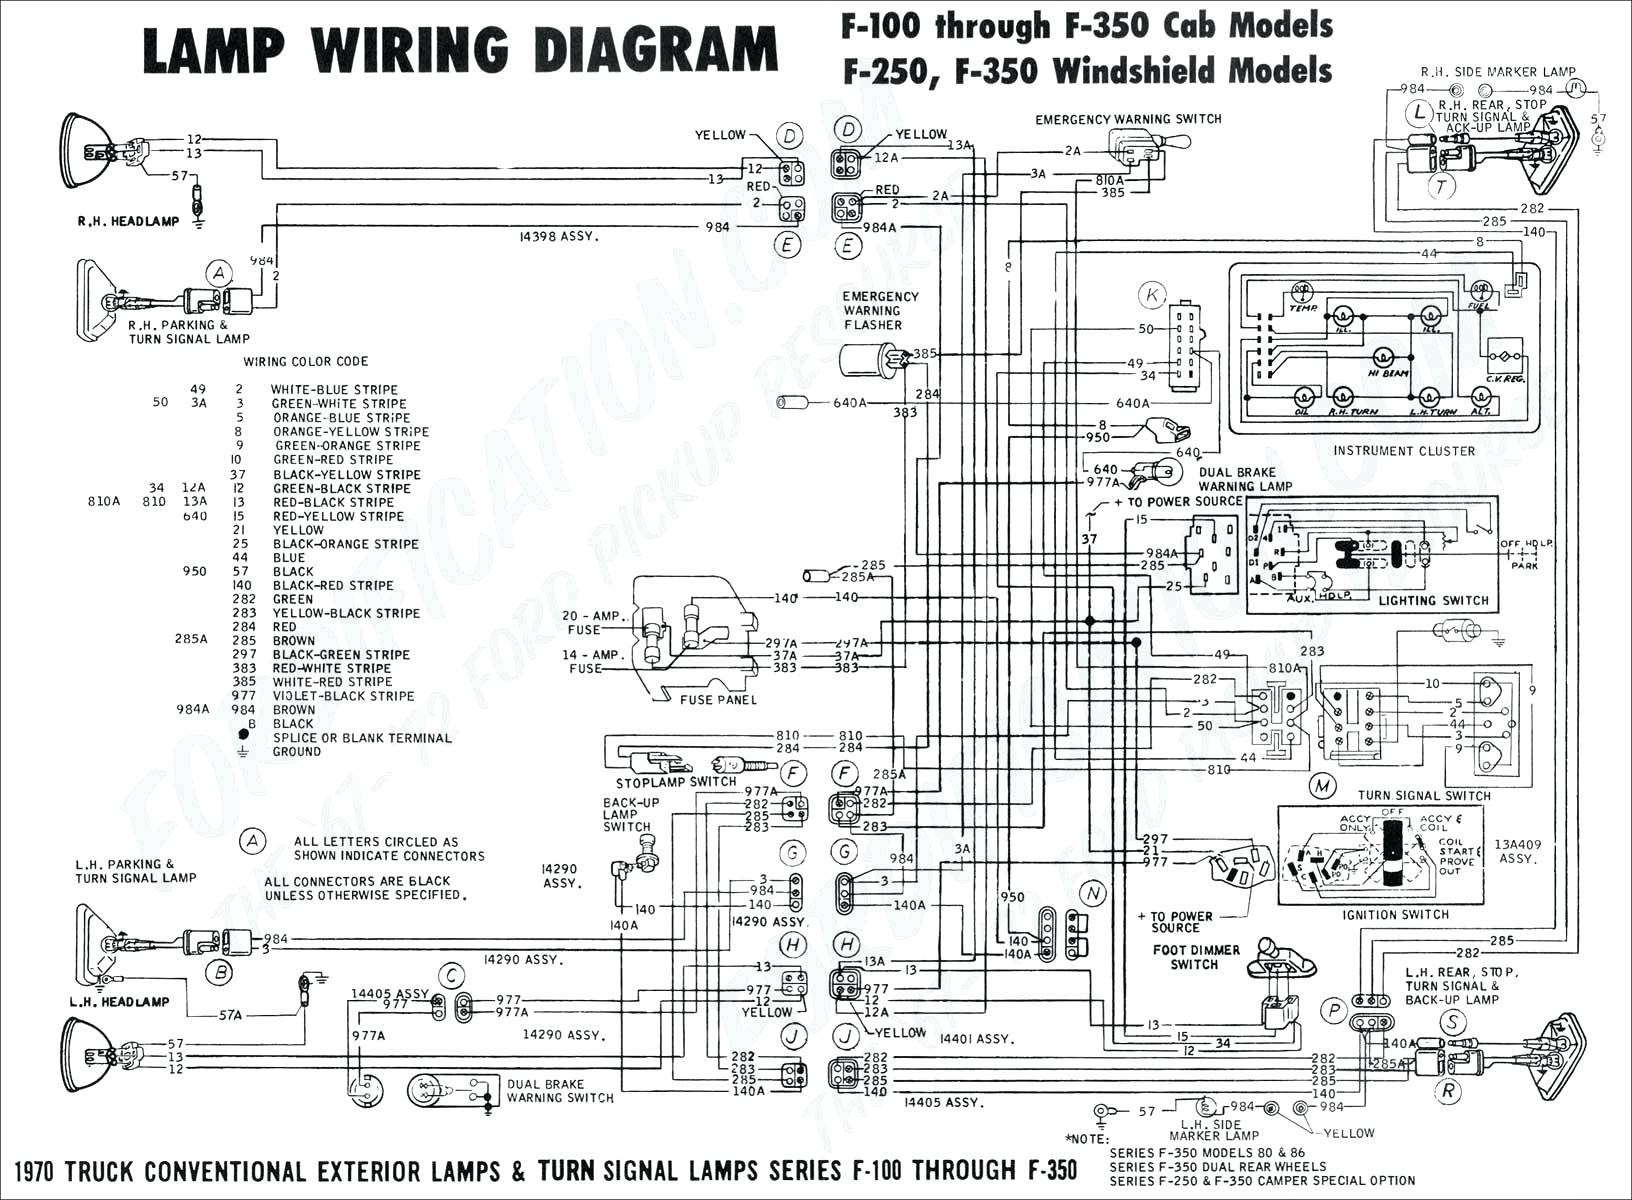 ford-ranger-engine-diagram-wiring-diagram-ford-f150-